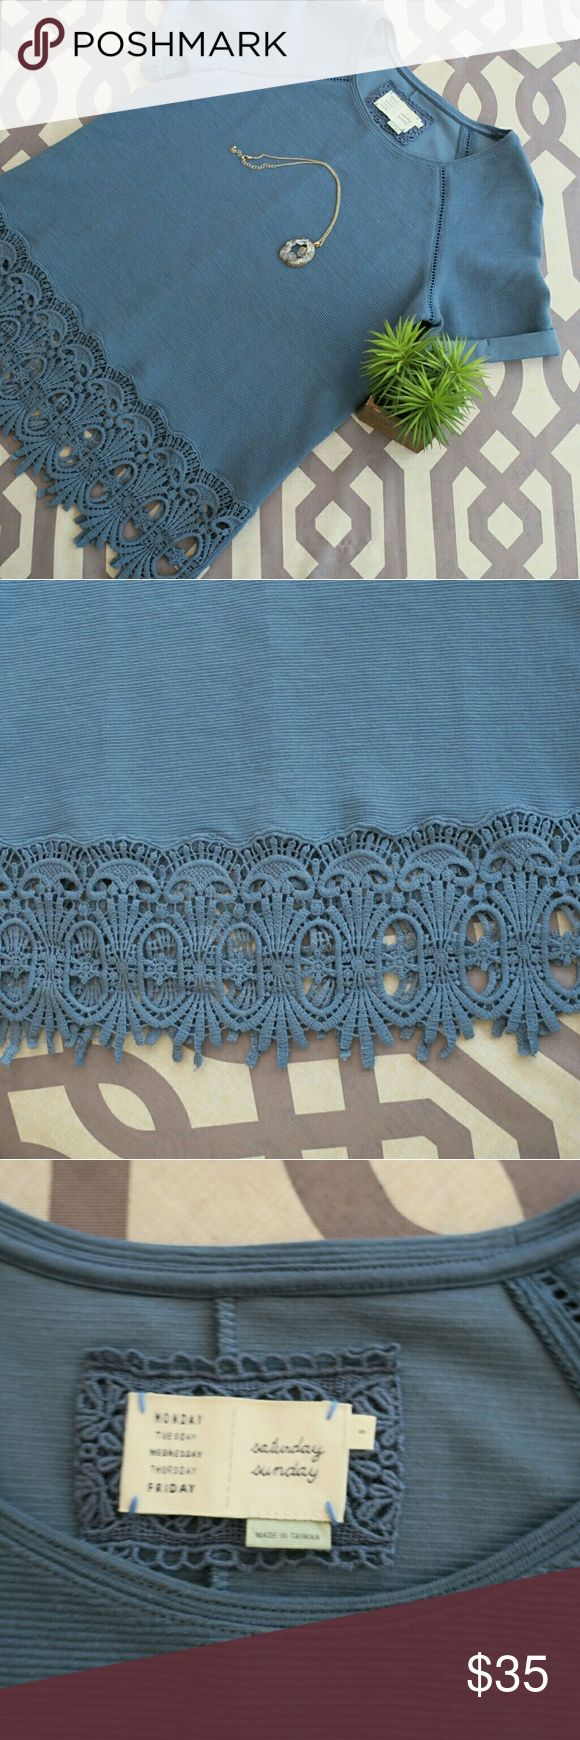 Anthropologie Sat/Sun Blue Crochet Bottom Blouse So pretty!! Looks great with jeans or slacks! NWOT Great Condition! Anthropologie Tops